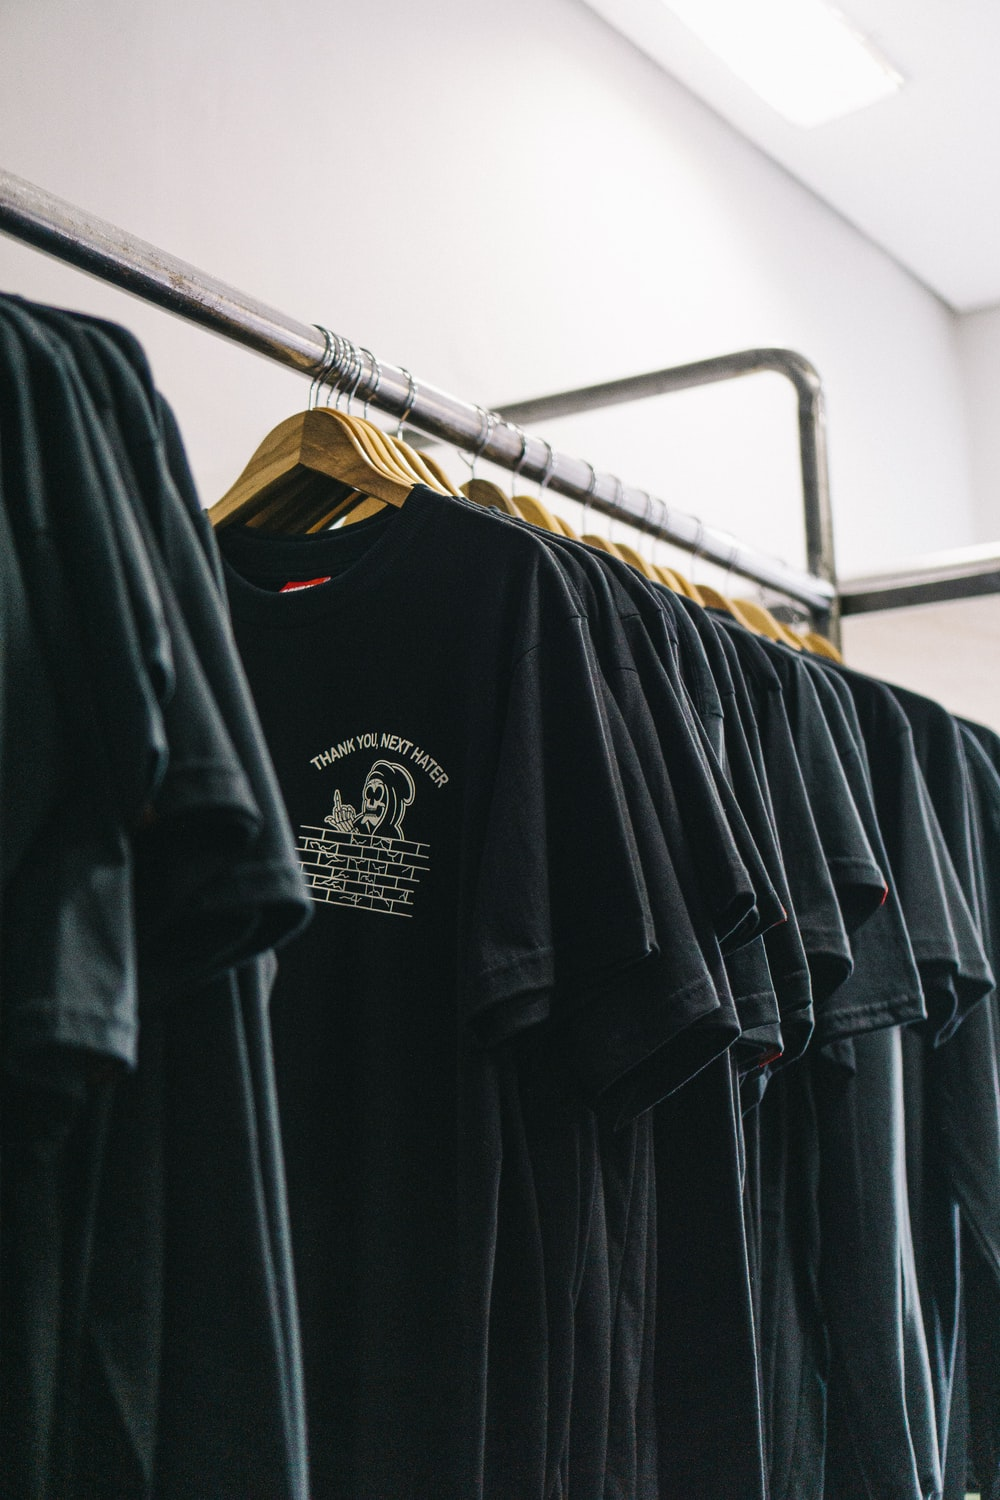 hanged black t-shirts beside wall